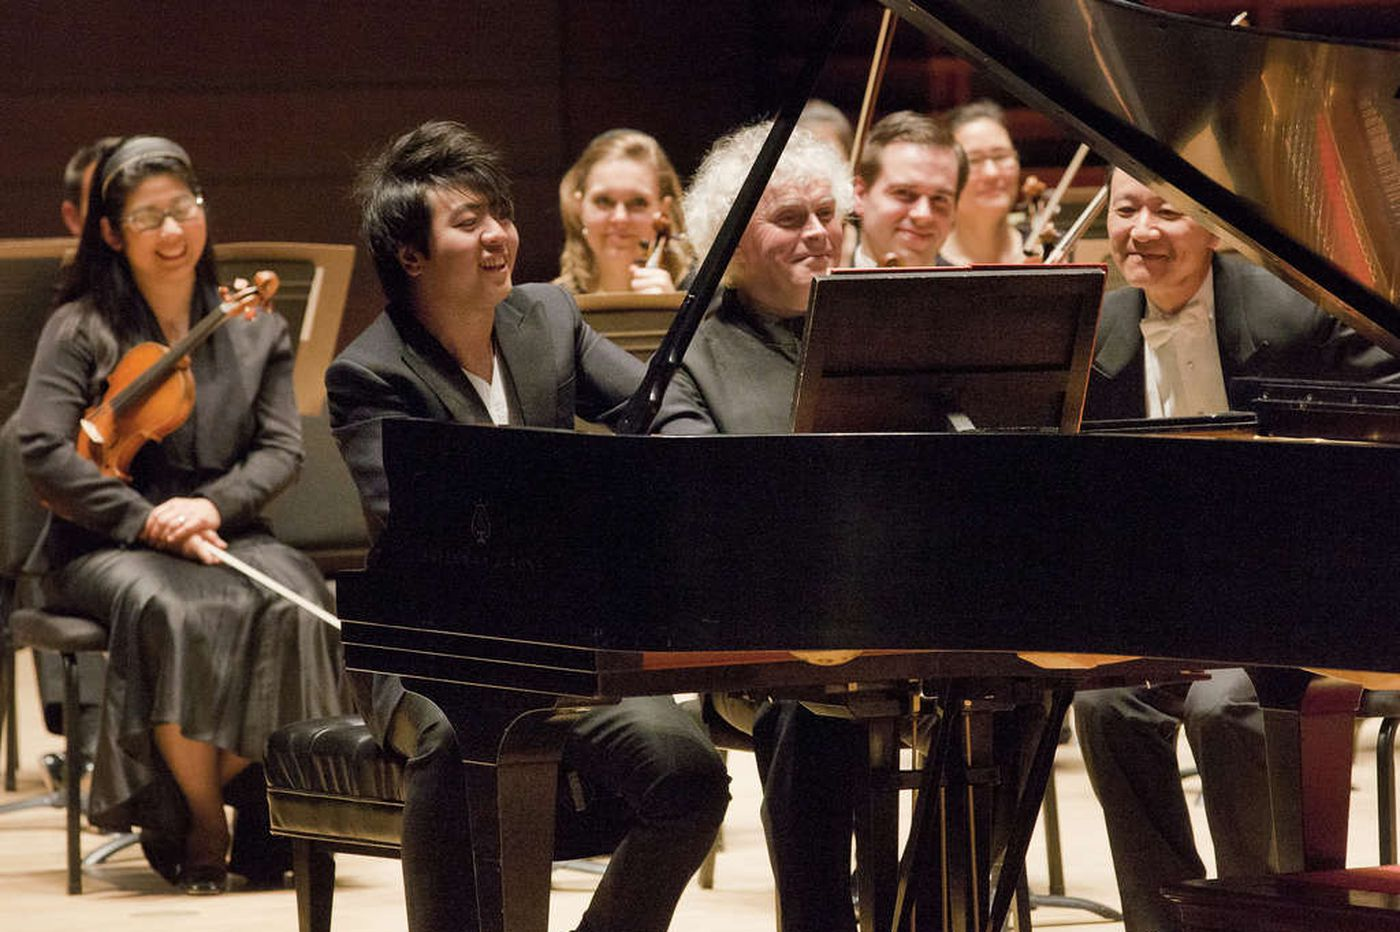 Pianist Lang Lang's antics tempered and abetted by conductor Simon Rattle